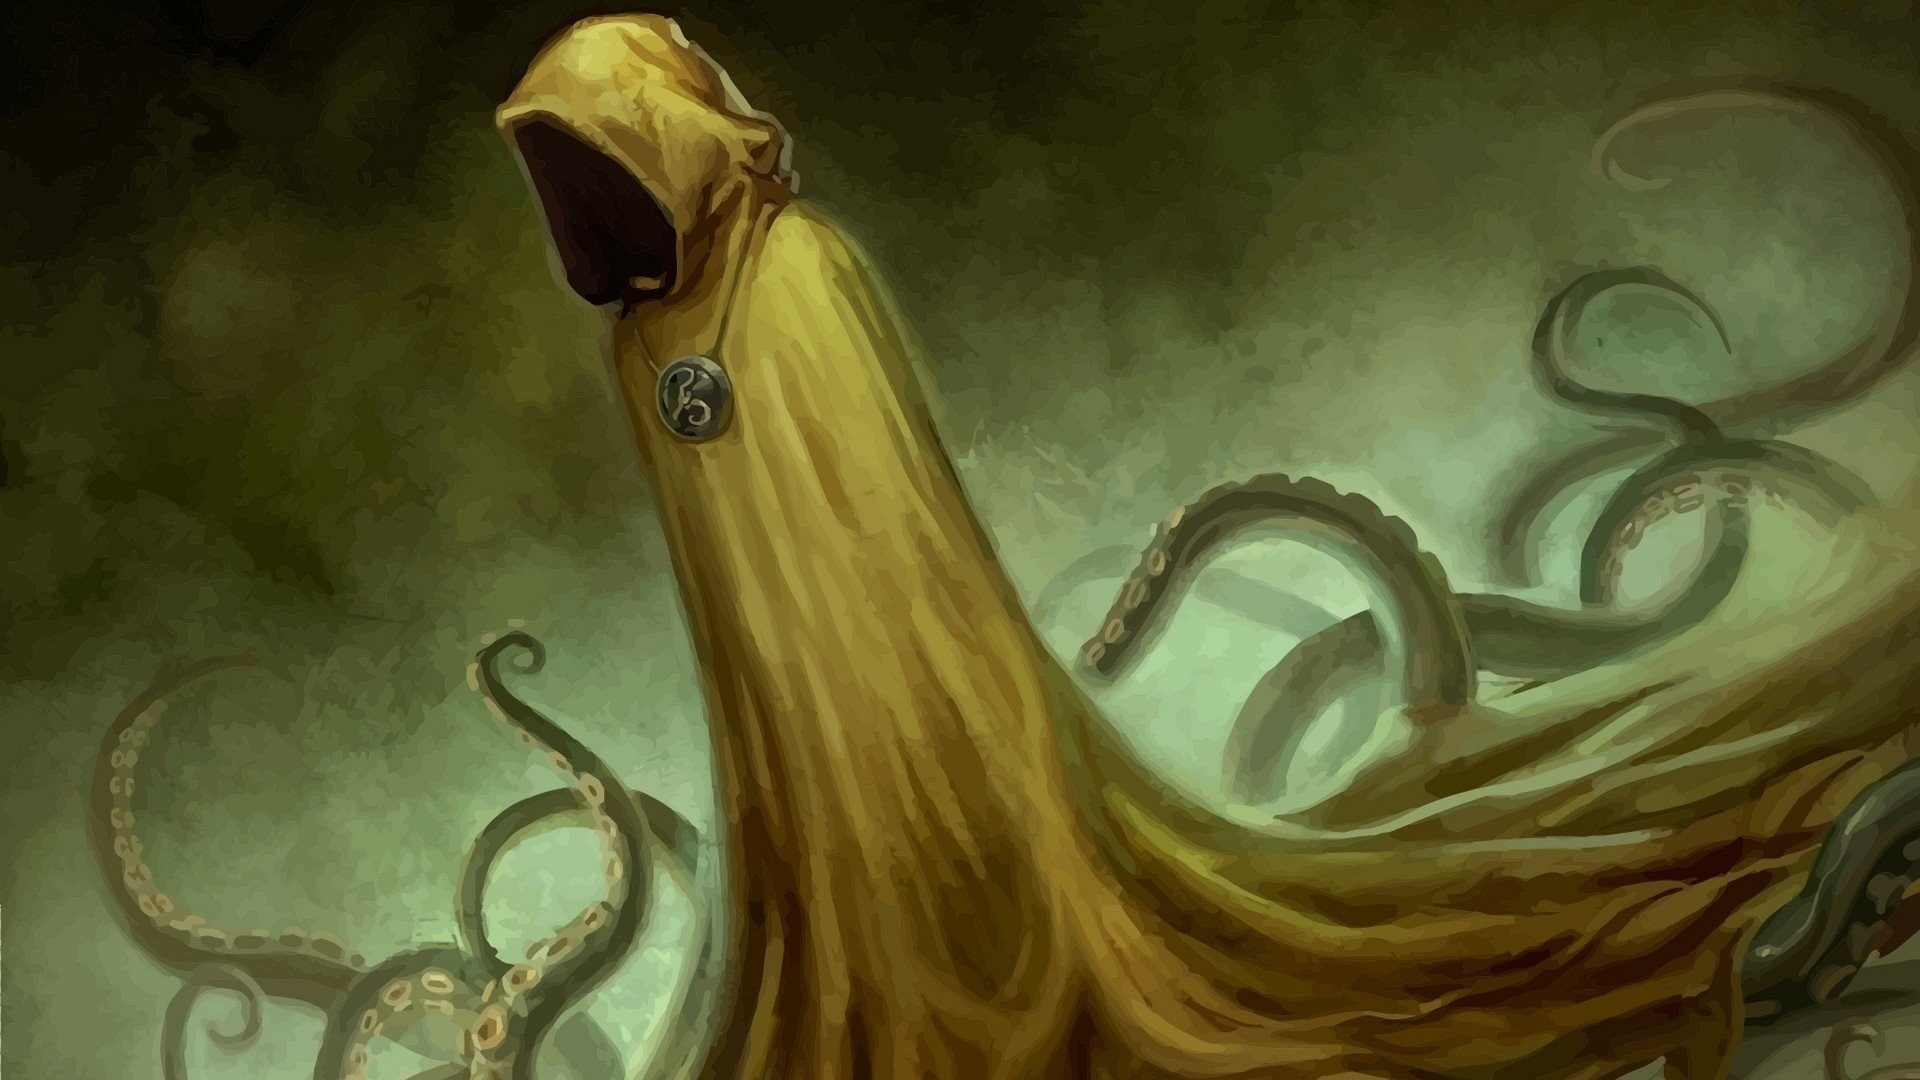 1920x1080 Fantasy - Dark H. P. Lovecraft Hastur Cthulhu Wallpaper